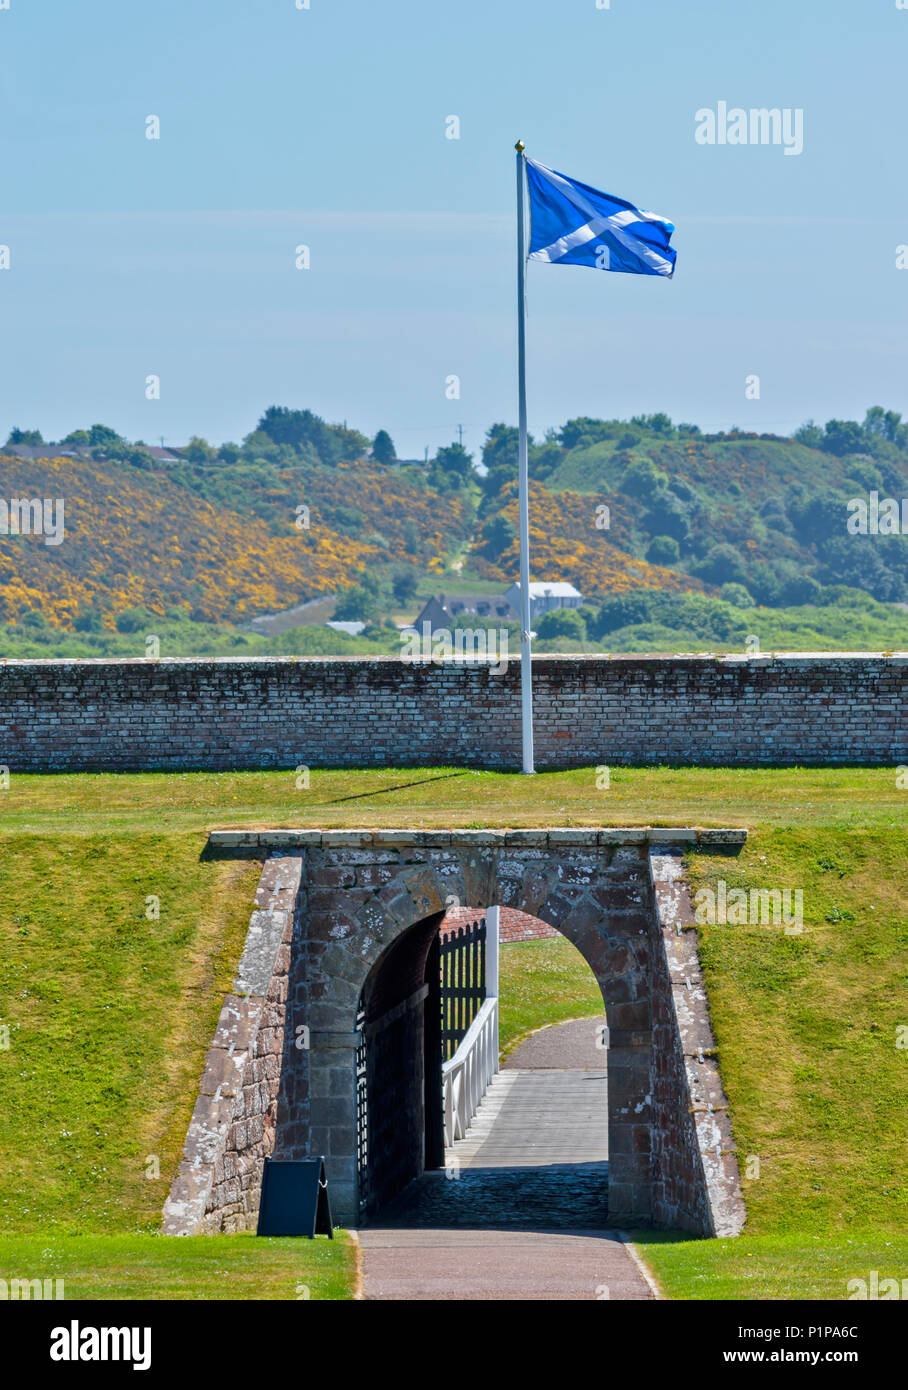 FORT GEORGE ARDERSIER INVERNESS SCOTLAND FORTIFICATIONS WITH ARCHWAY AND SALTIRE FLAG BLOWING IN THE WIND - Stock Image